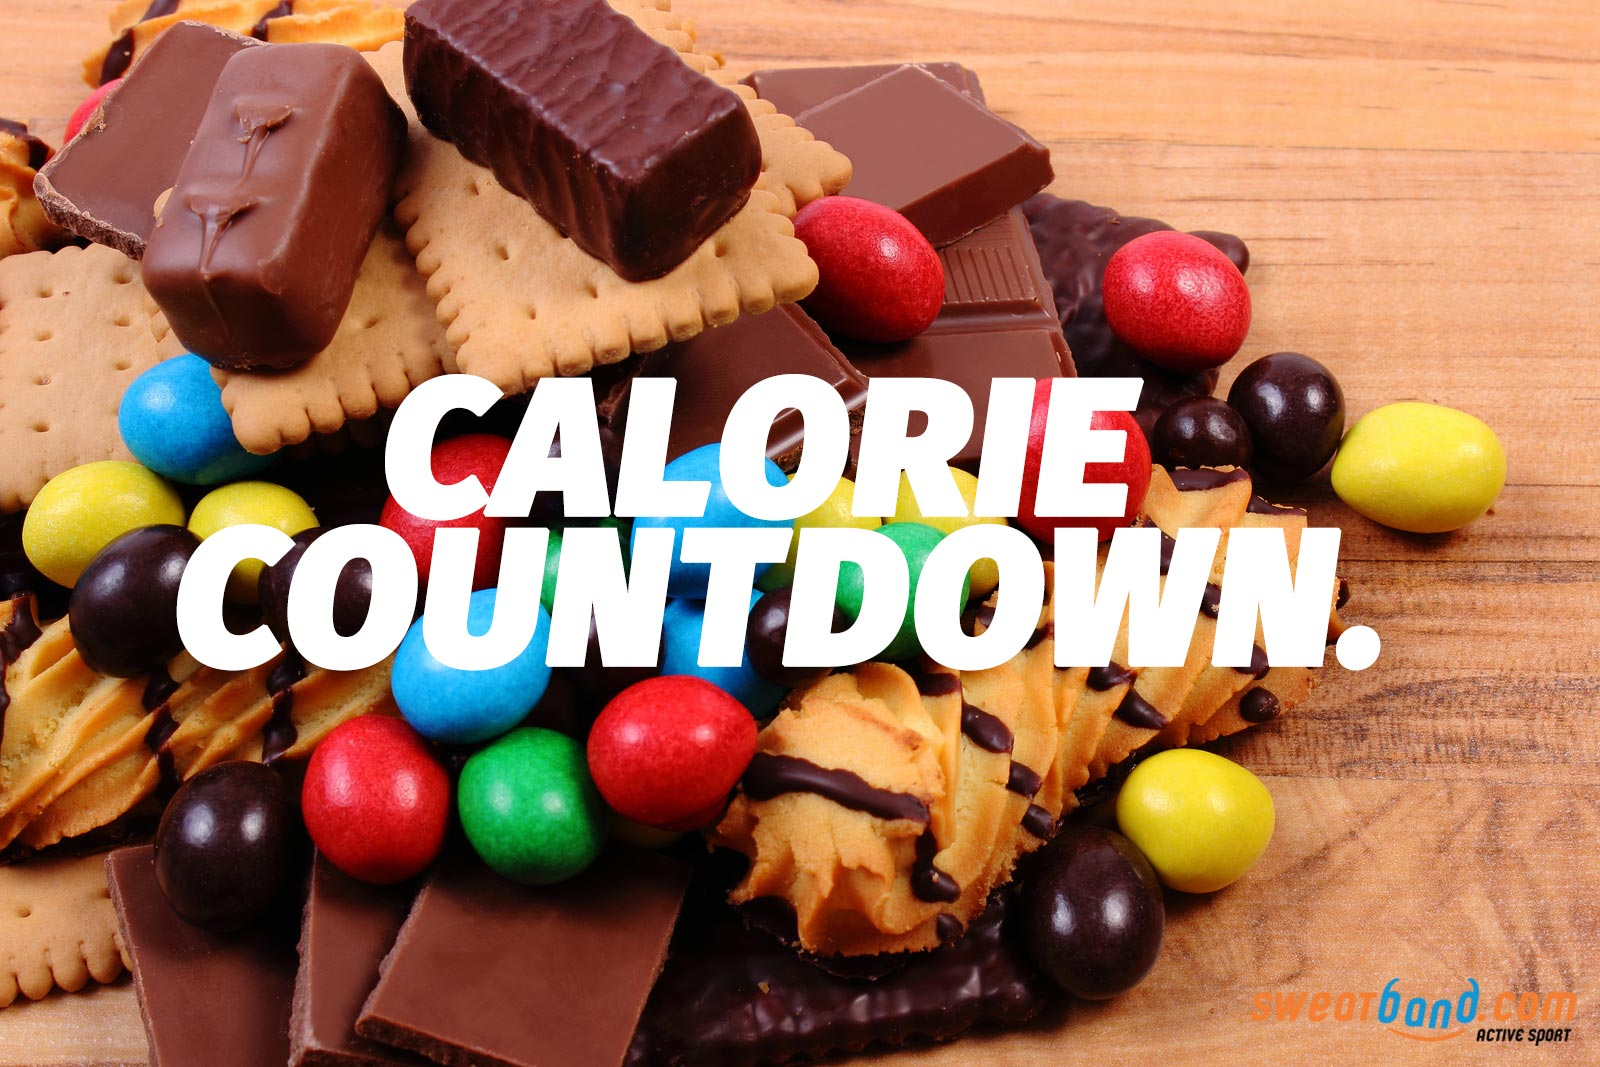 Calorie Countdown Christmas Sweets Chocolate